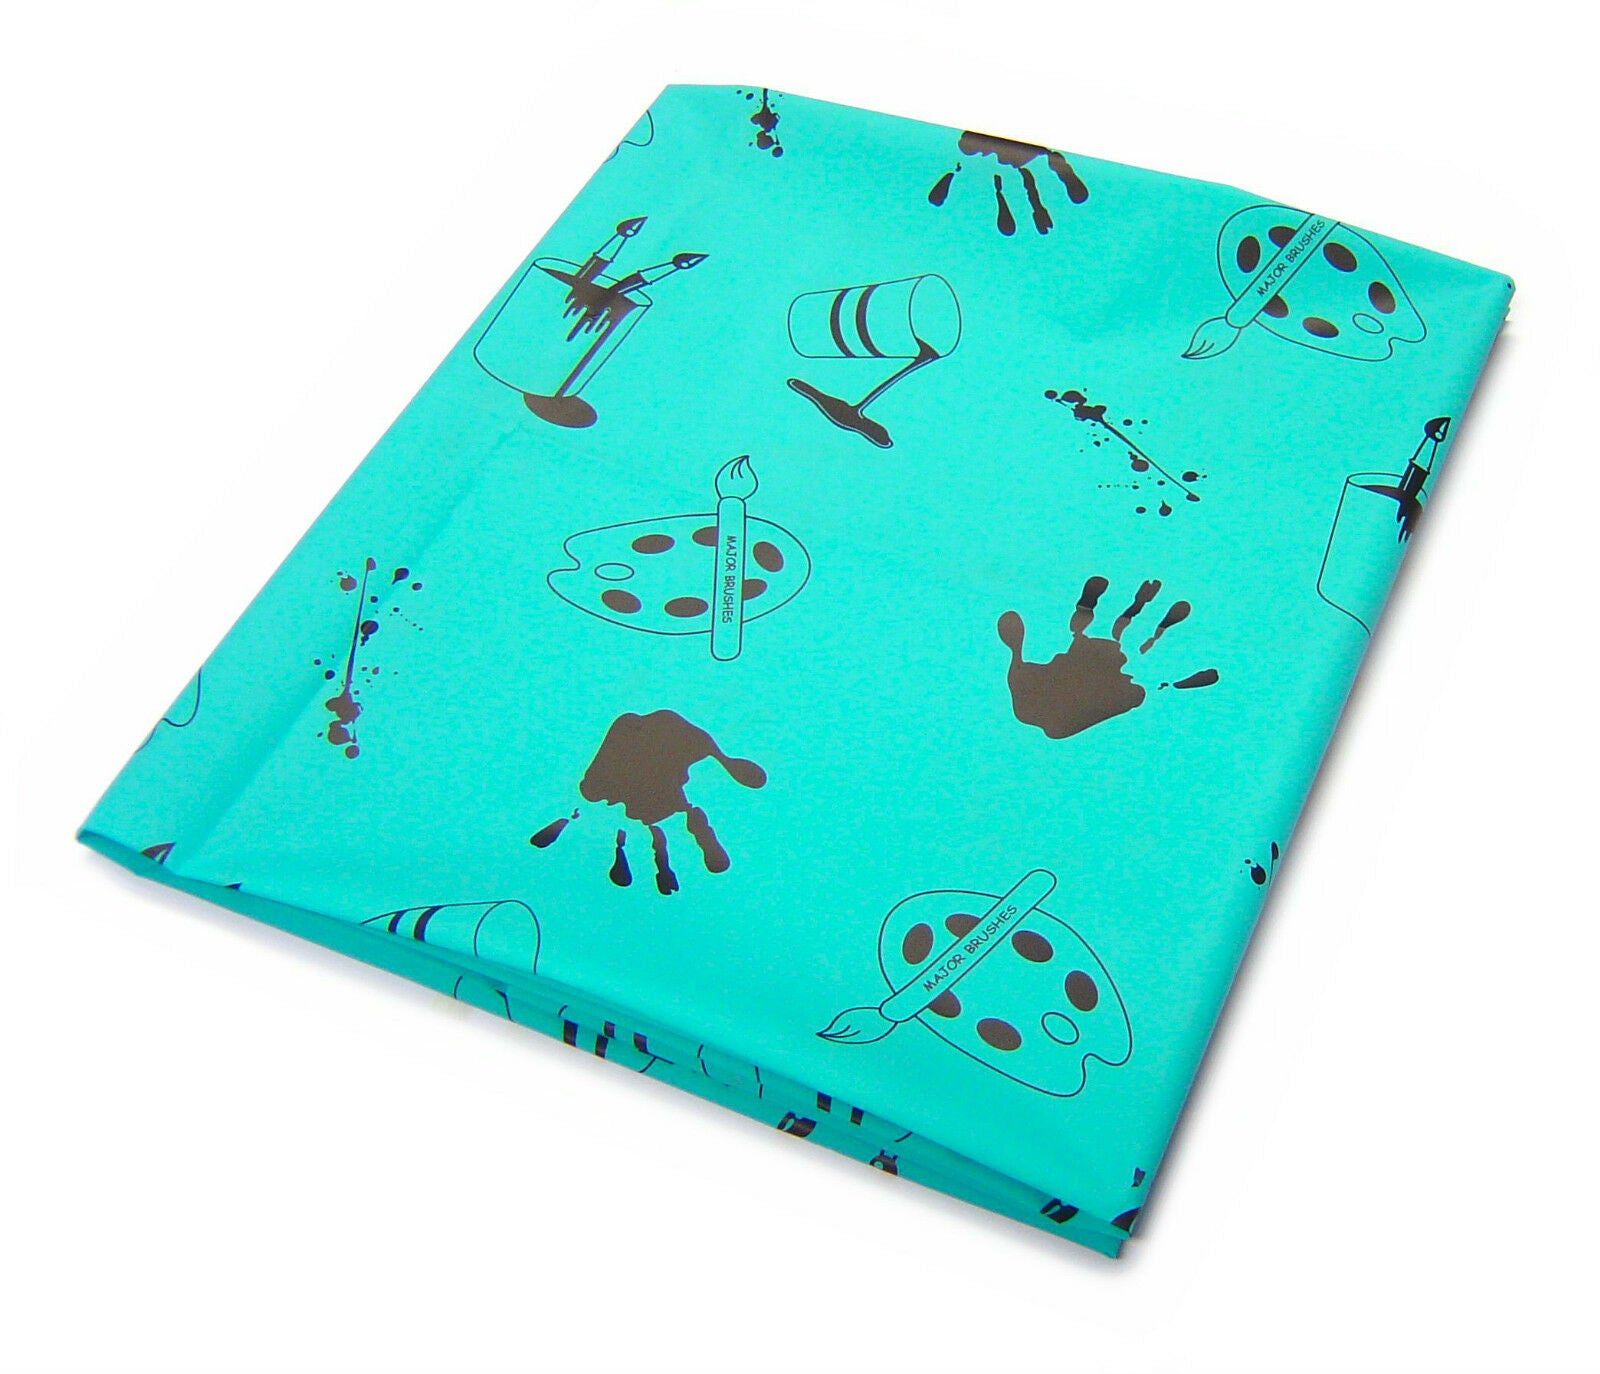 Arts and Crafts Painting Table Mat Cover. Shop Now.